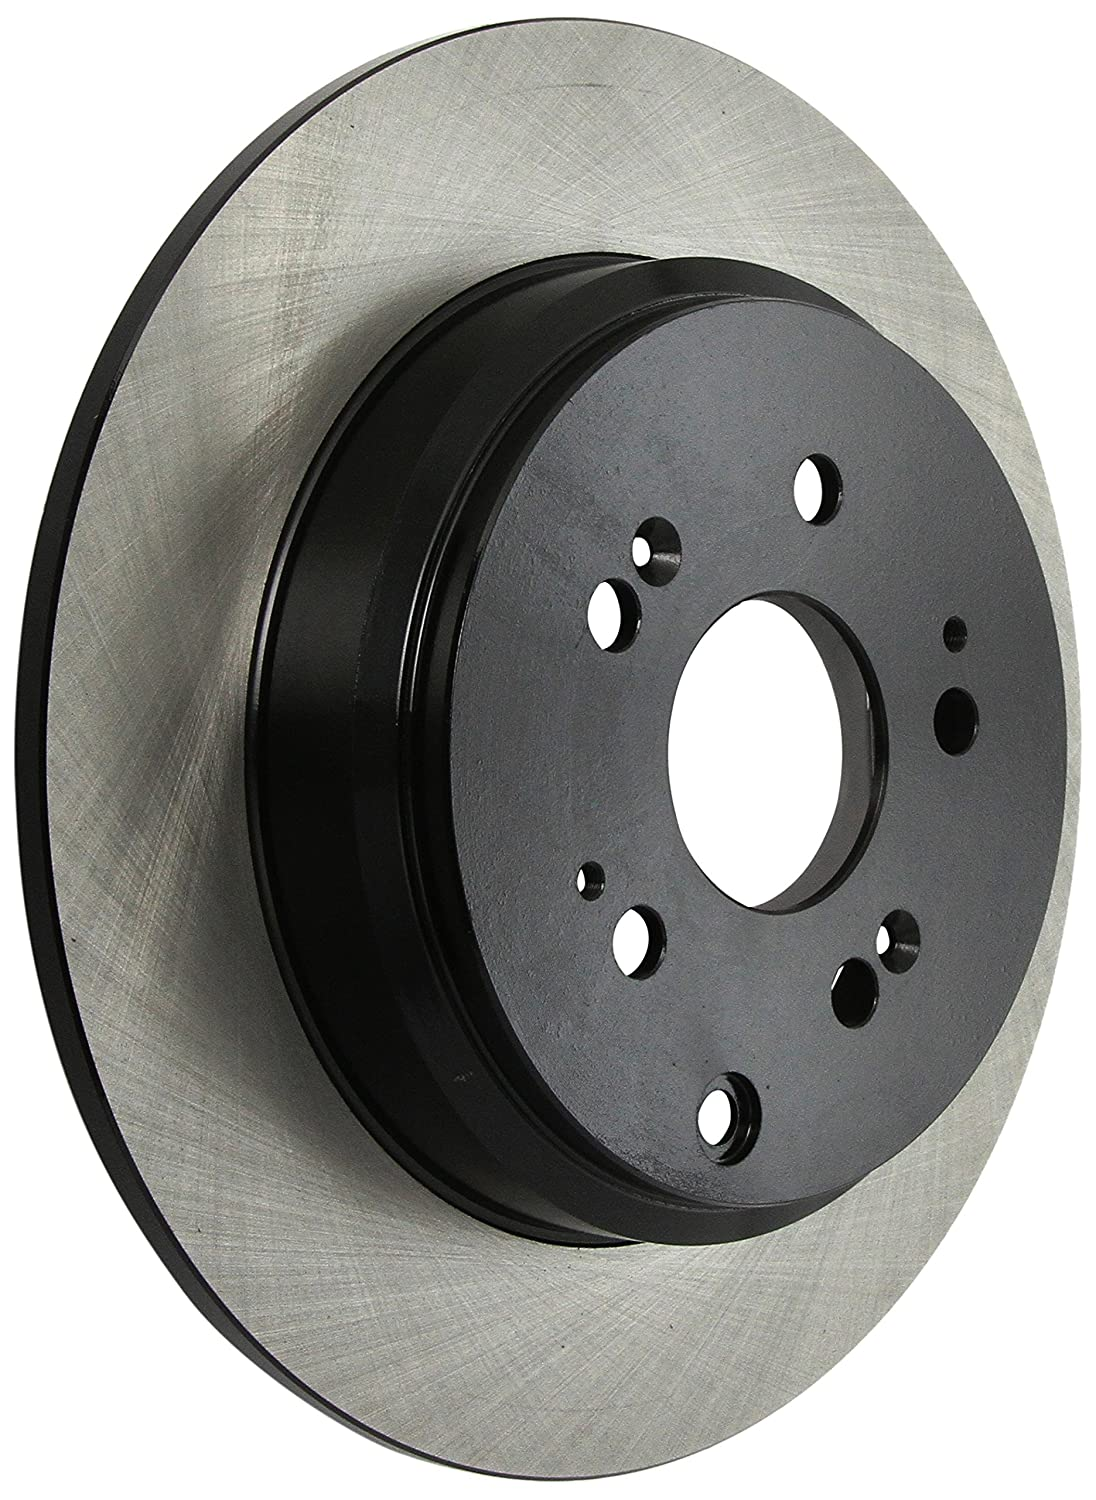 Centric Parts 120.40072 Premium Brake Rotor with E-Coating